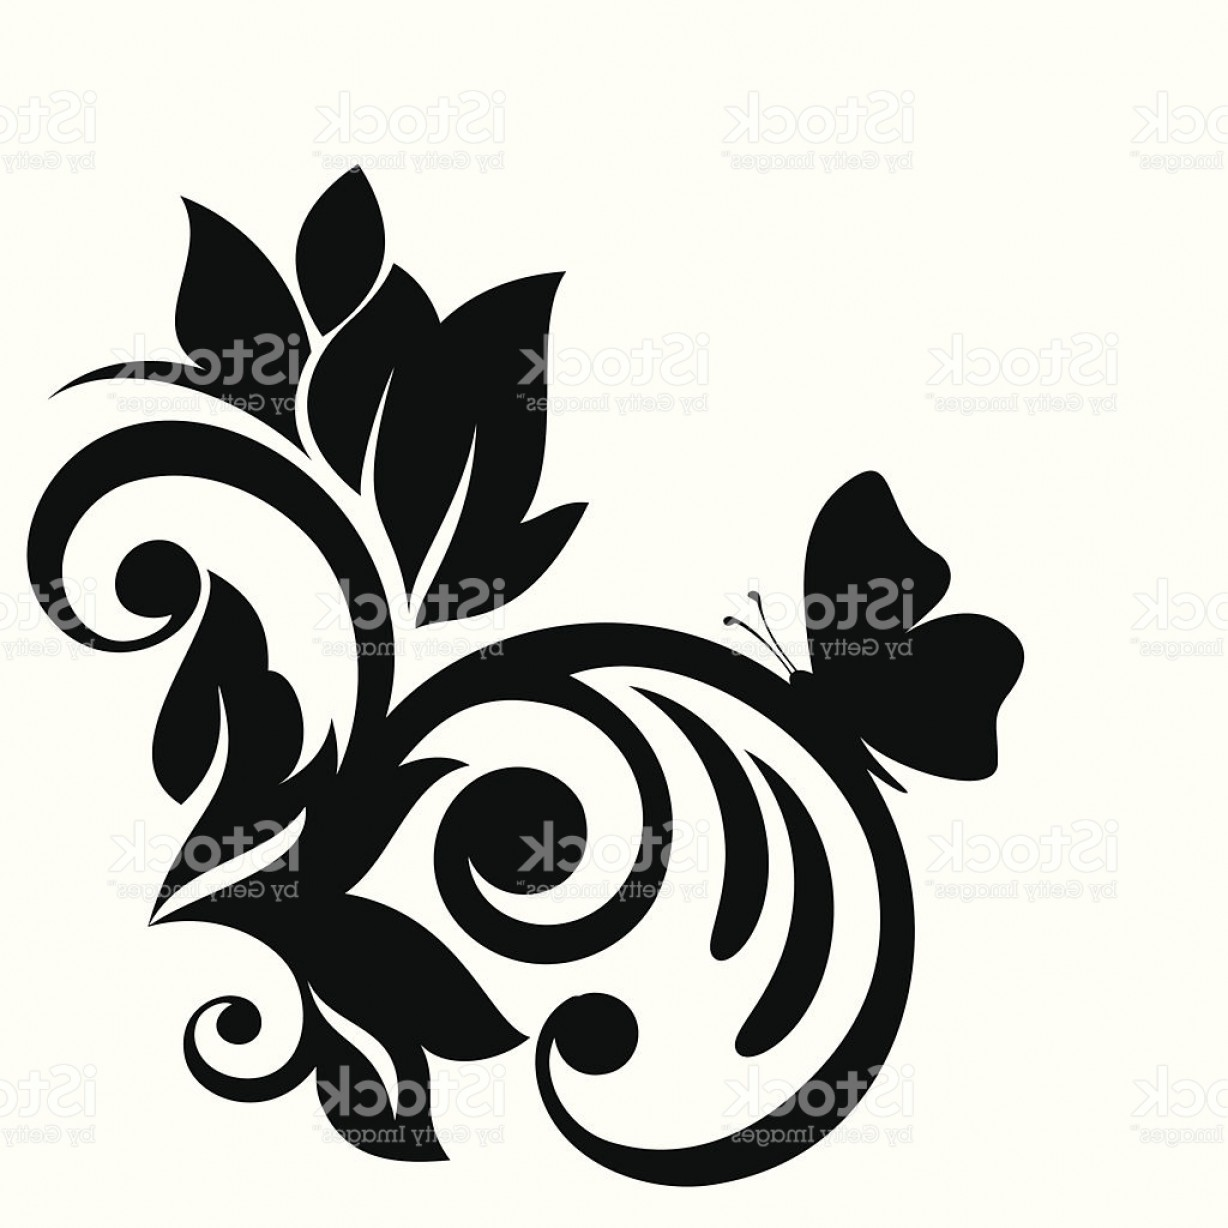 Butter Fly And Flower Vector Black And White: Black And White Flower Leaves And Butterfly Design Element Gm